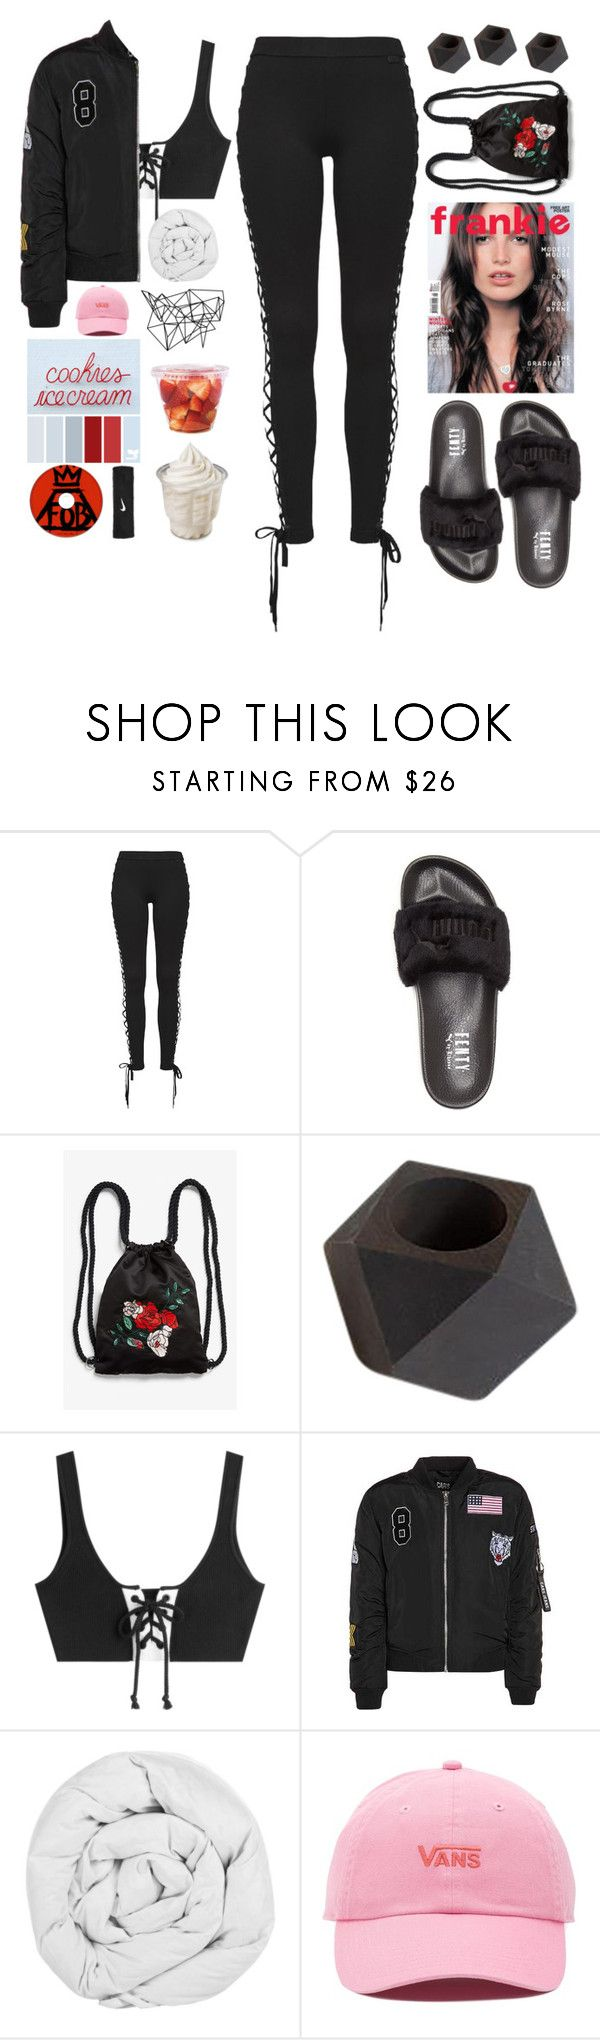 """30. stay rude"" by zorionxx ❤ liked on Polyvore featuring Puma, Monki, The Fine Bedding Company, Color Me, Vans and NIKE"